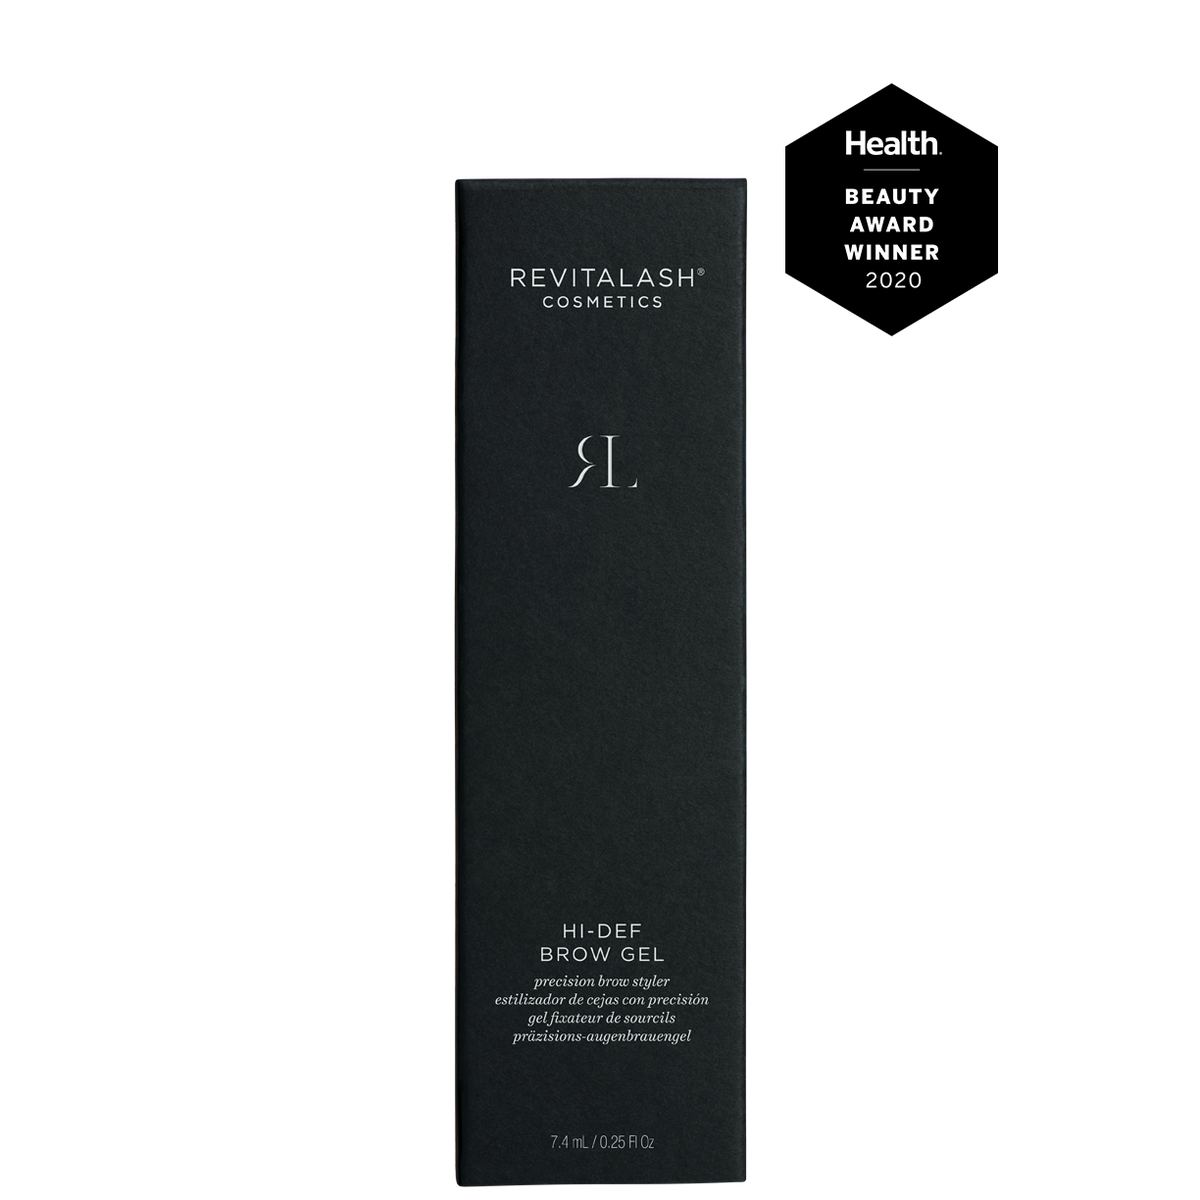 Image of Hi-Def Brow Gel box with 2020 Health Beauty Award Seal